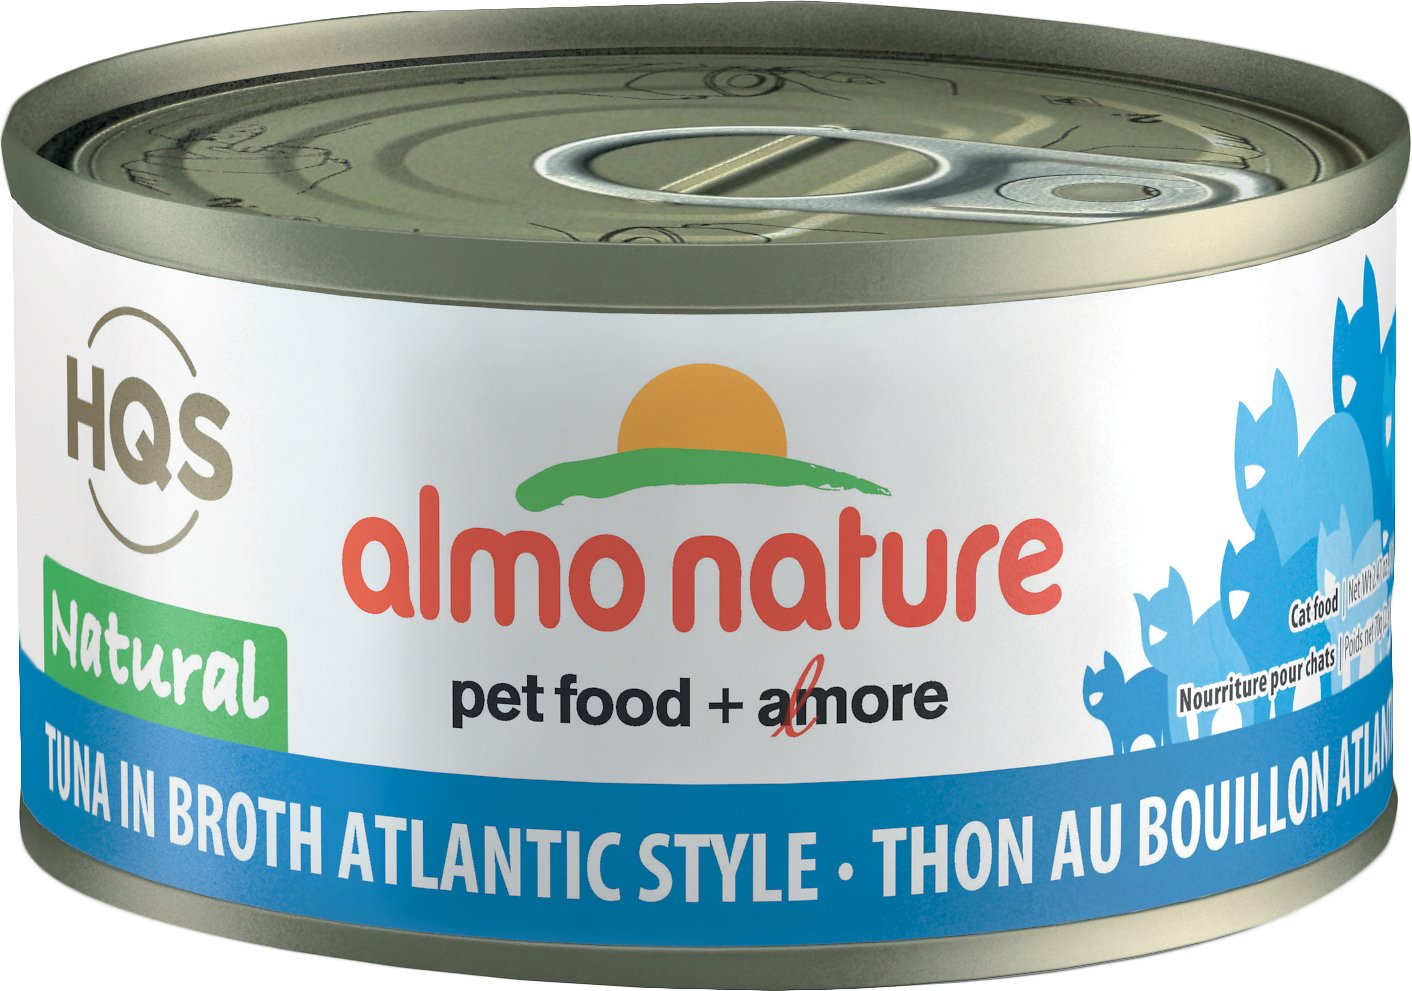 Almo Nature HQS Natural Tuna in Broth Atlantic Style Grain-Free Canned Cat Food, 2.47-oz